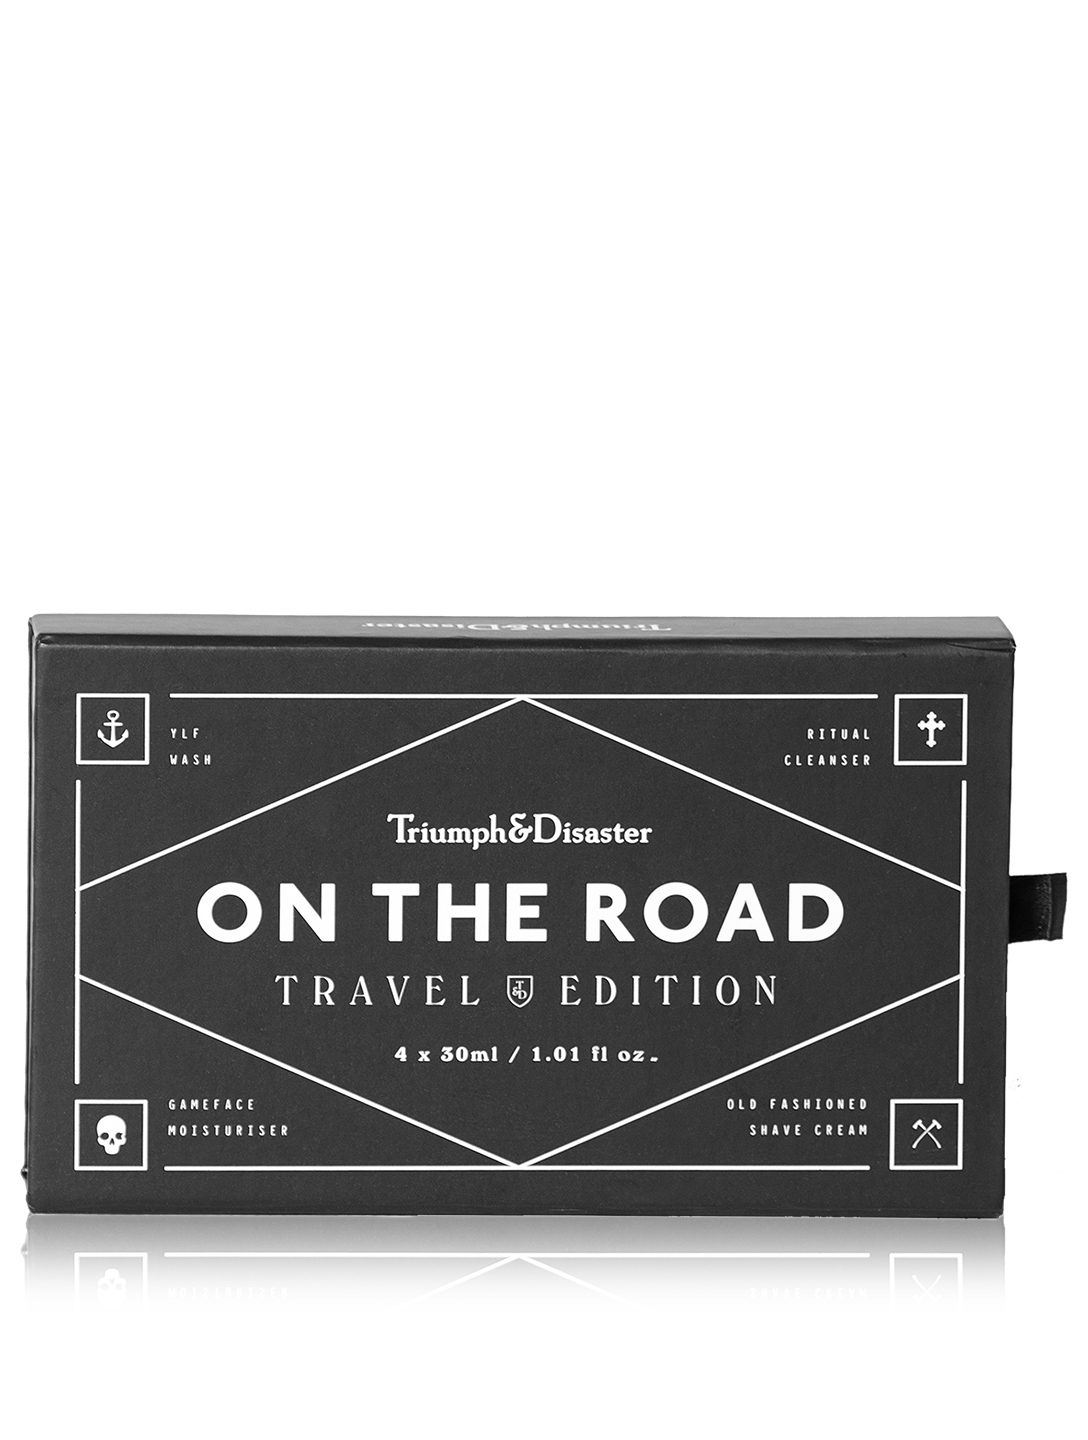 TRIUMPH & DISASTER Coffret de voyage On the Road Beauté